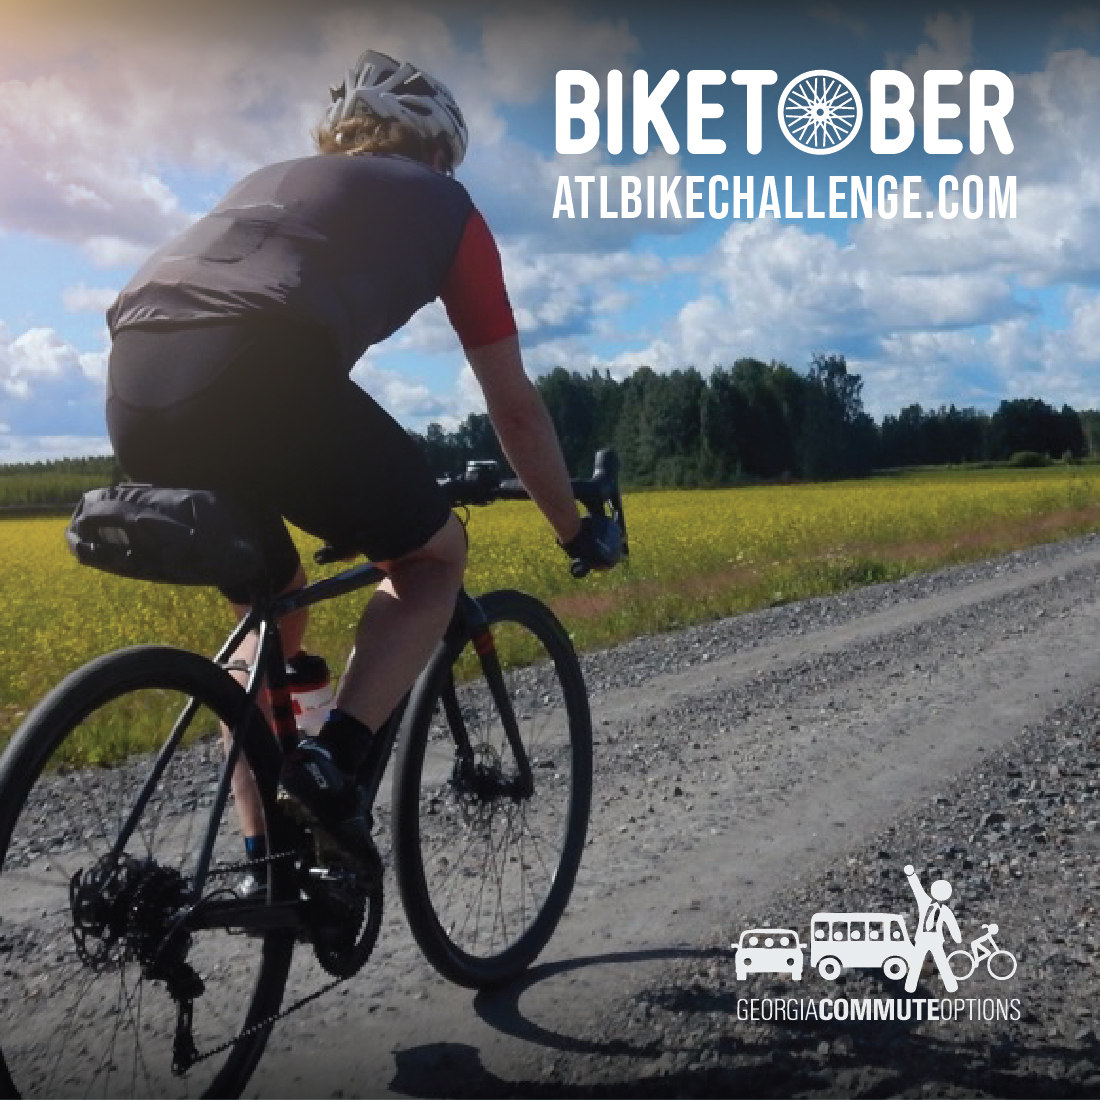 Biking can help improve heart health and reduce stress – plus you can win all kinds of prizes! Register for #Biketober before Oct. 1 at